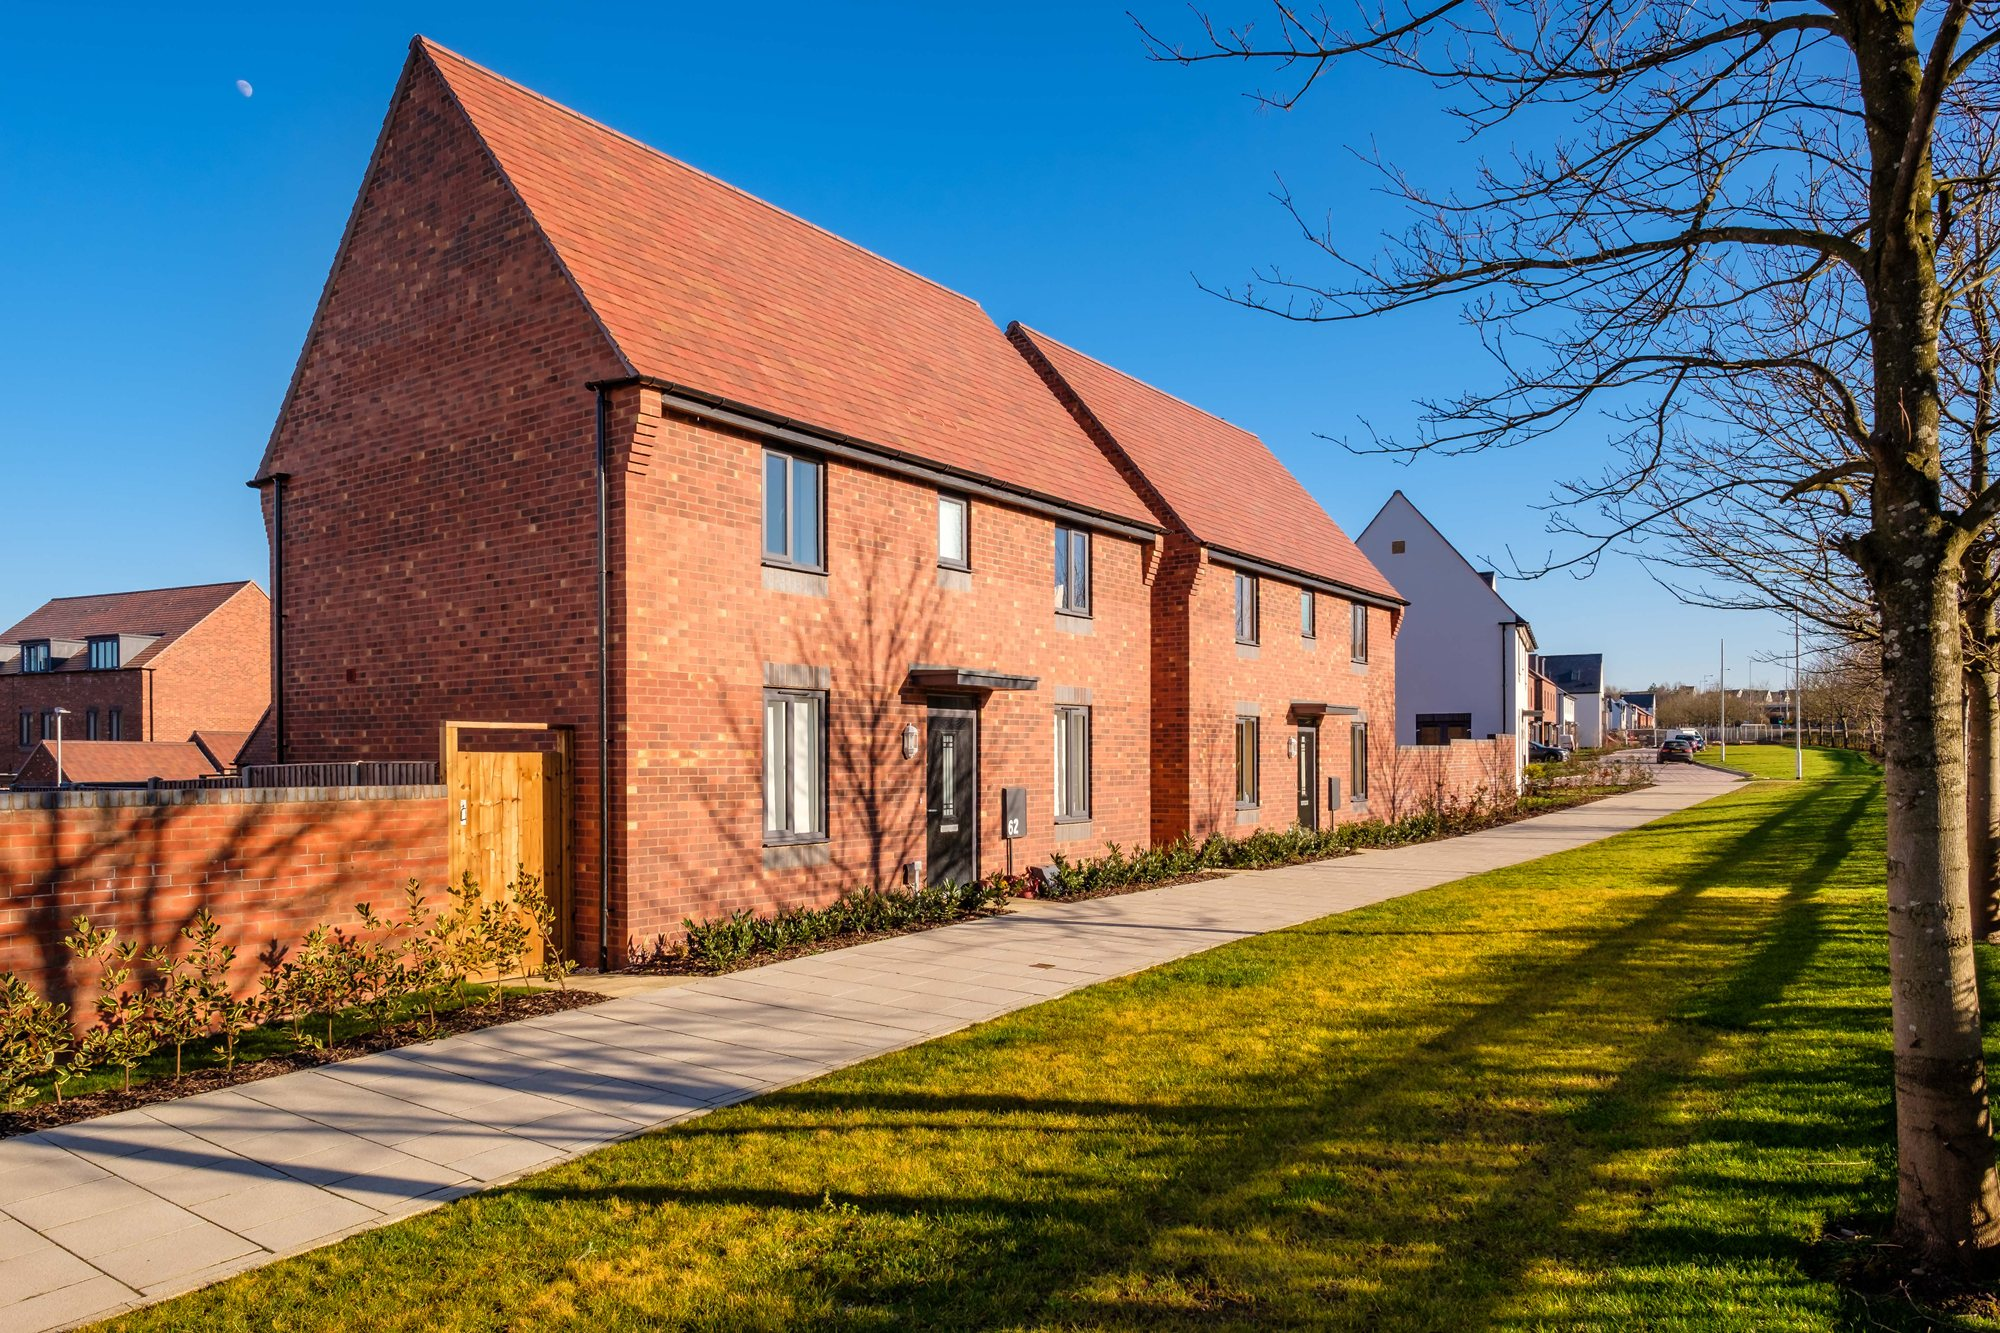 New Build Homes in Telford